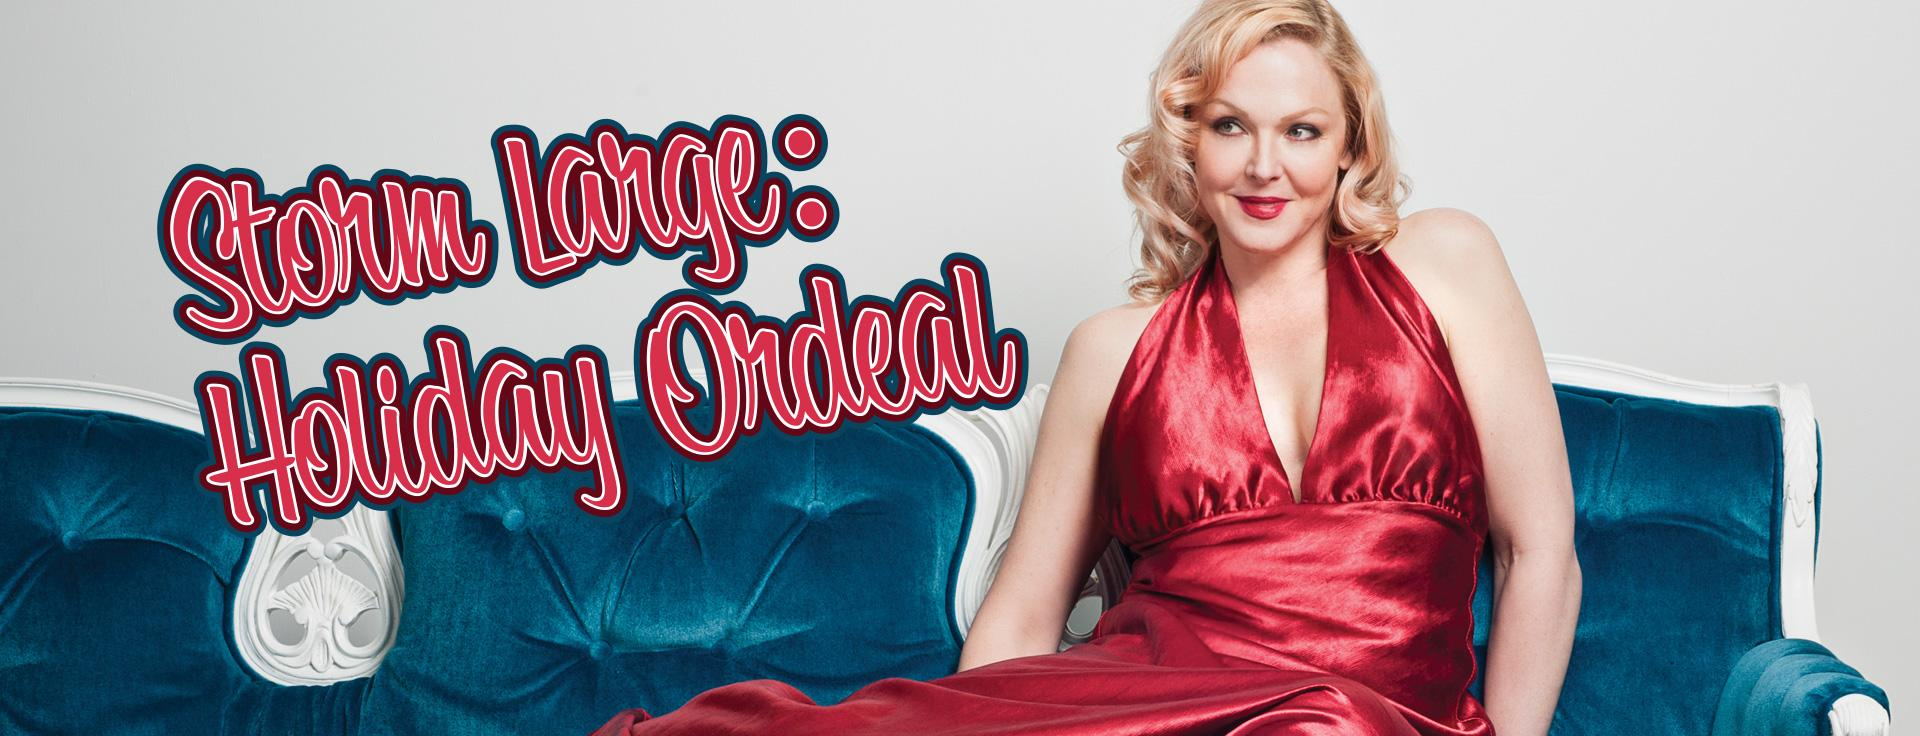 Storm Large in a silky red dress sitting on a blue couch